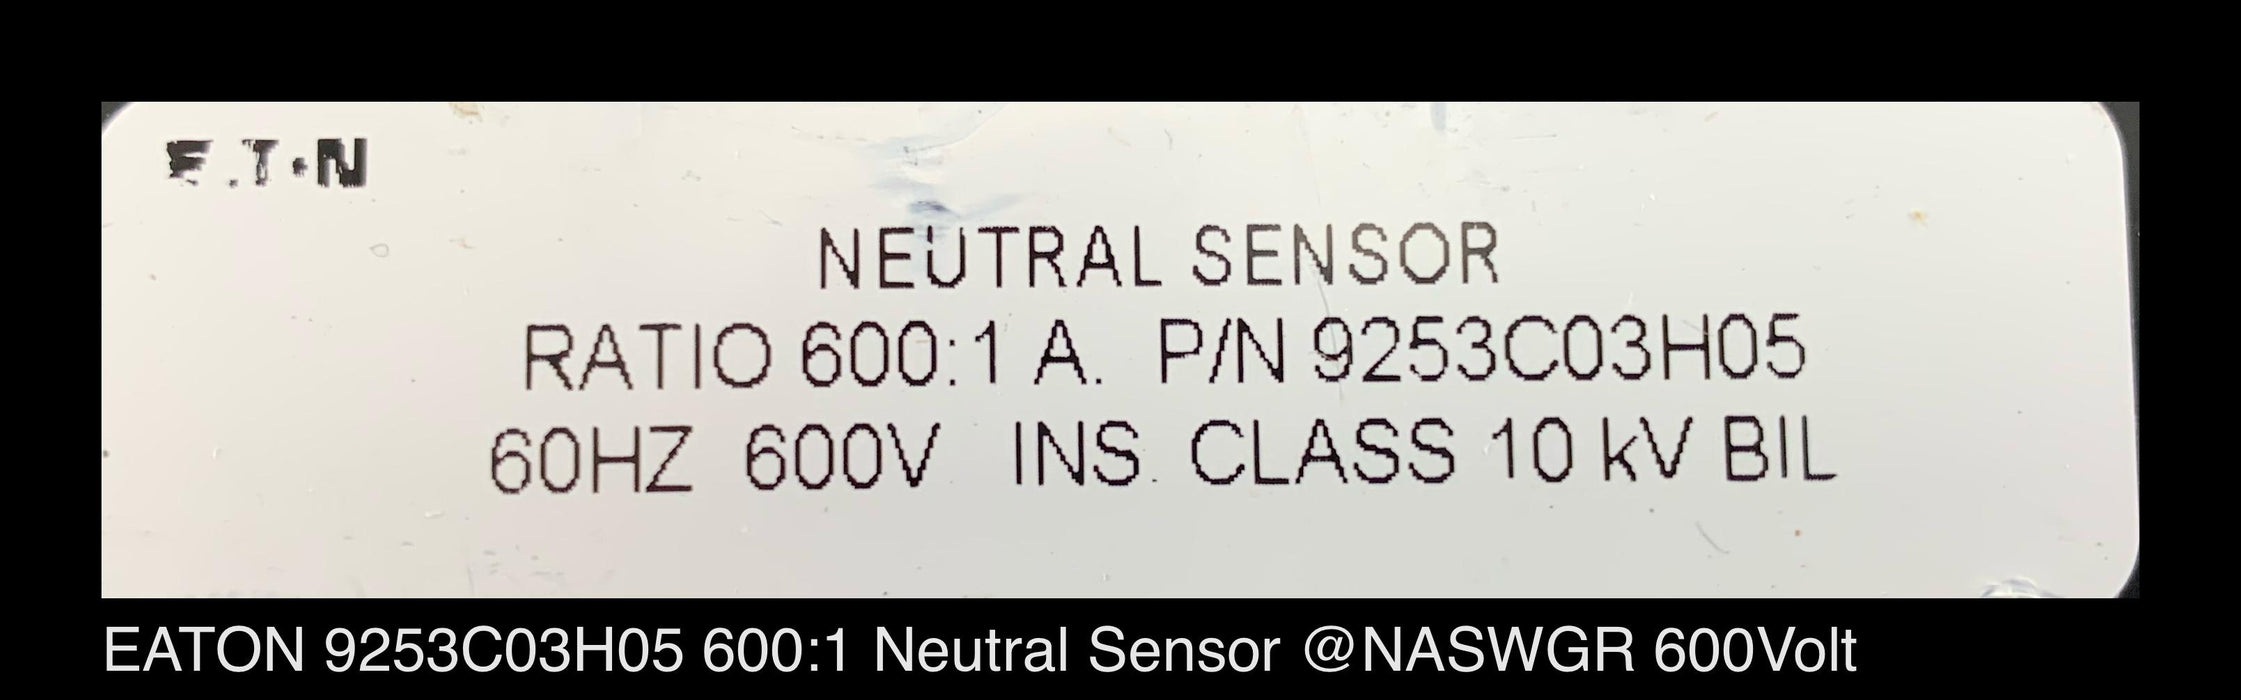 EATON 9253C03H05 Neutral Sensor  600:1 Ratio Unused Surplus